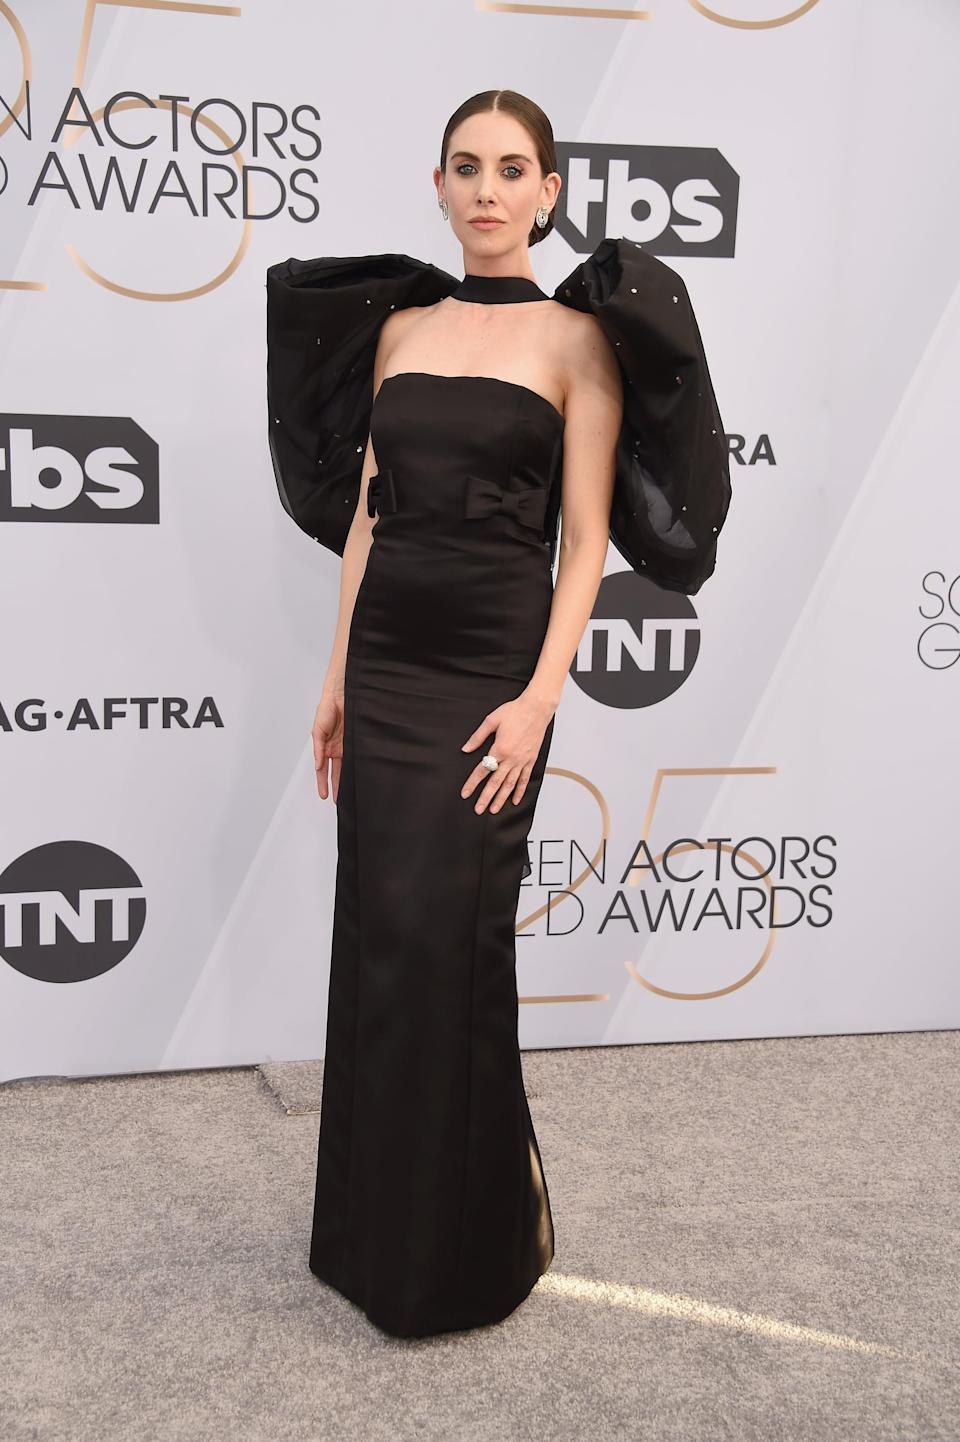 """<p>Wearing <a rel=""""nofollow noopener"""" href=""""https://www.popsugar.com/fashion/Alison-Brie-Black-Dress-SAG-Awards-2019-45724095"""" target=""""_blank"""" data-ylk=""""slk:a black Miu Miu gown"""" class=""""link rapid-noclick-resp"""">a black Miu Miu gown</a> that featured a big bow on the back with Fred Leighton jewels and Jimmy Choo shoes.</p>"""